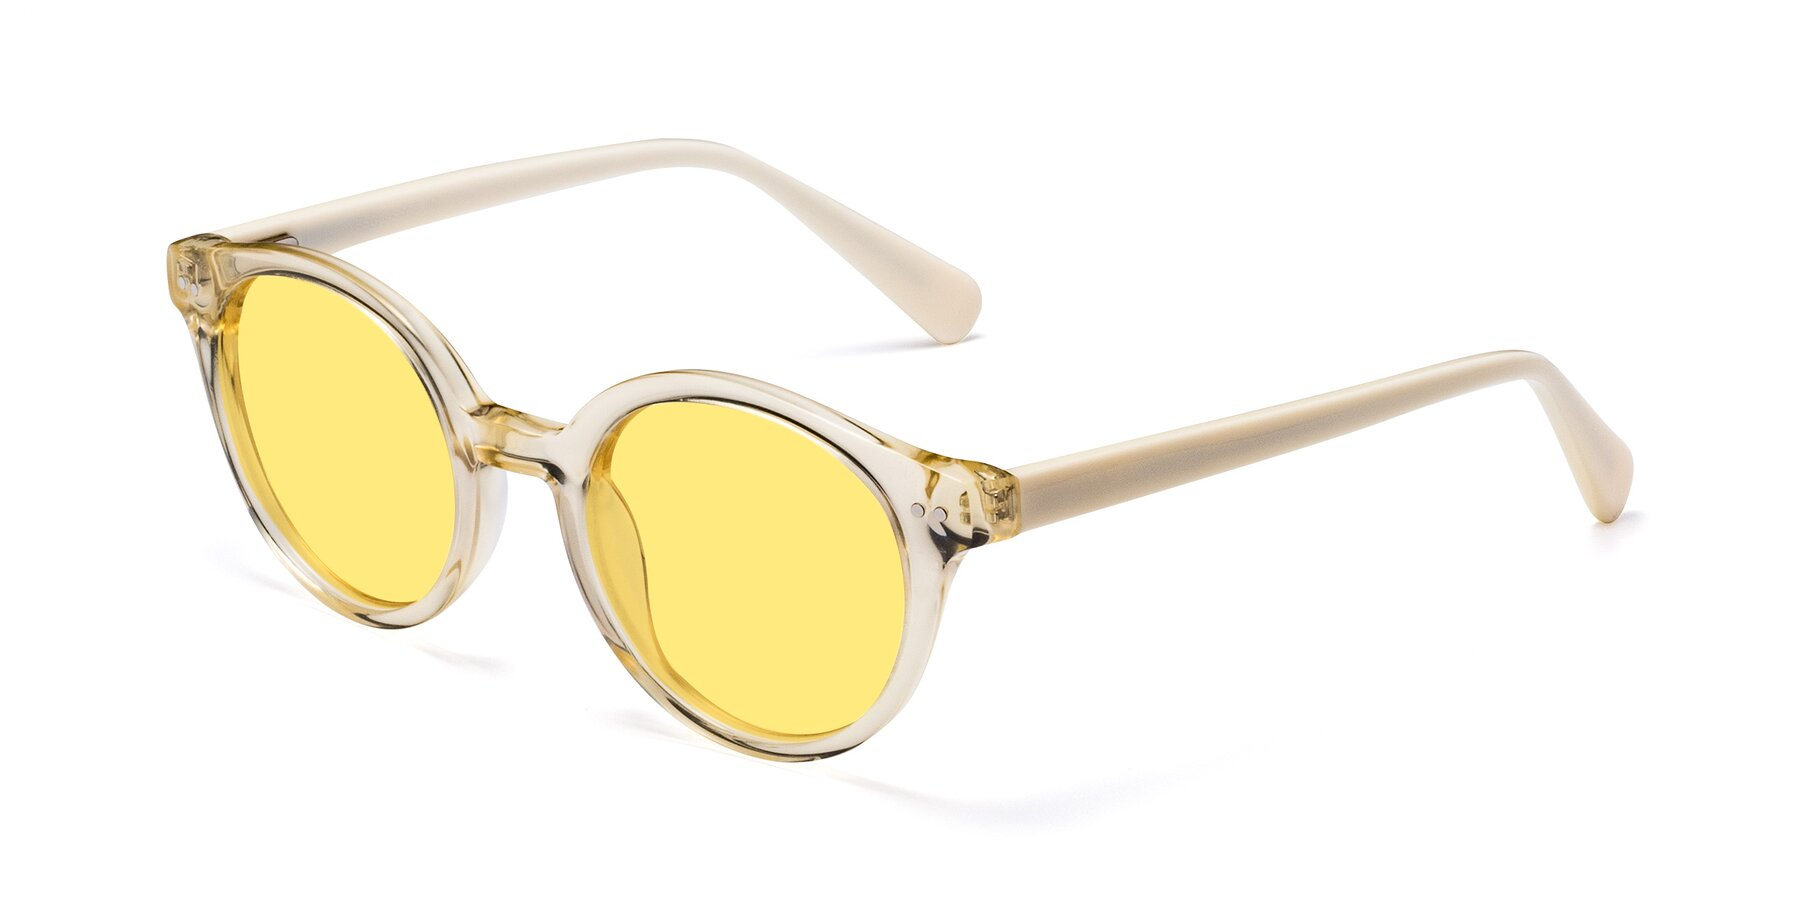 Angle of 17277 in Transparent Beige with Medium Yellow Tinted Lenses